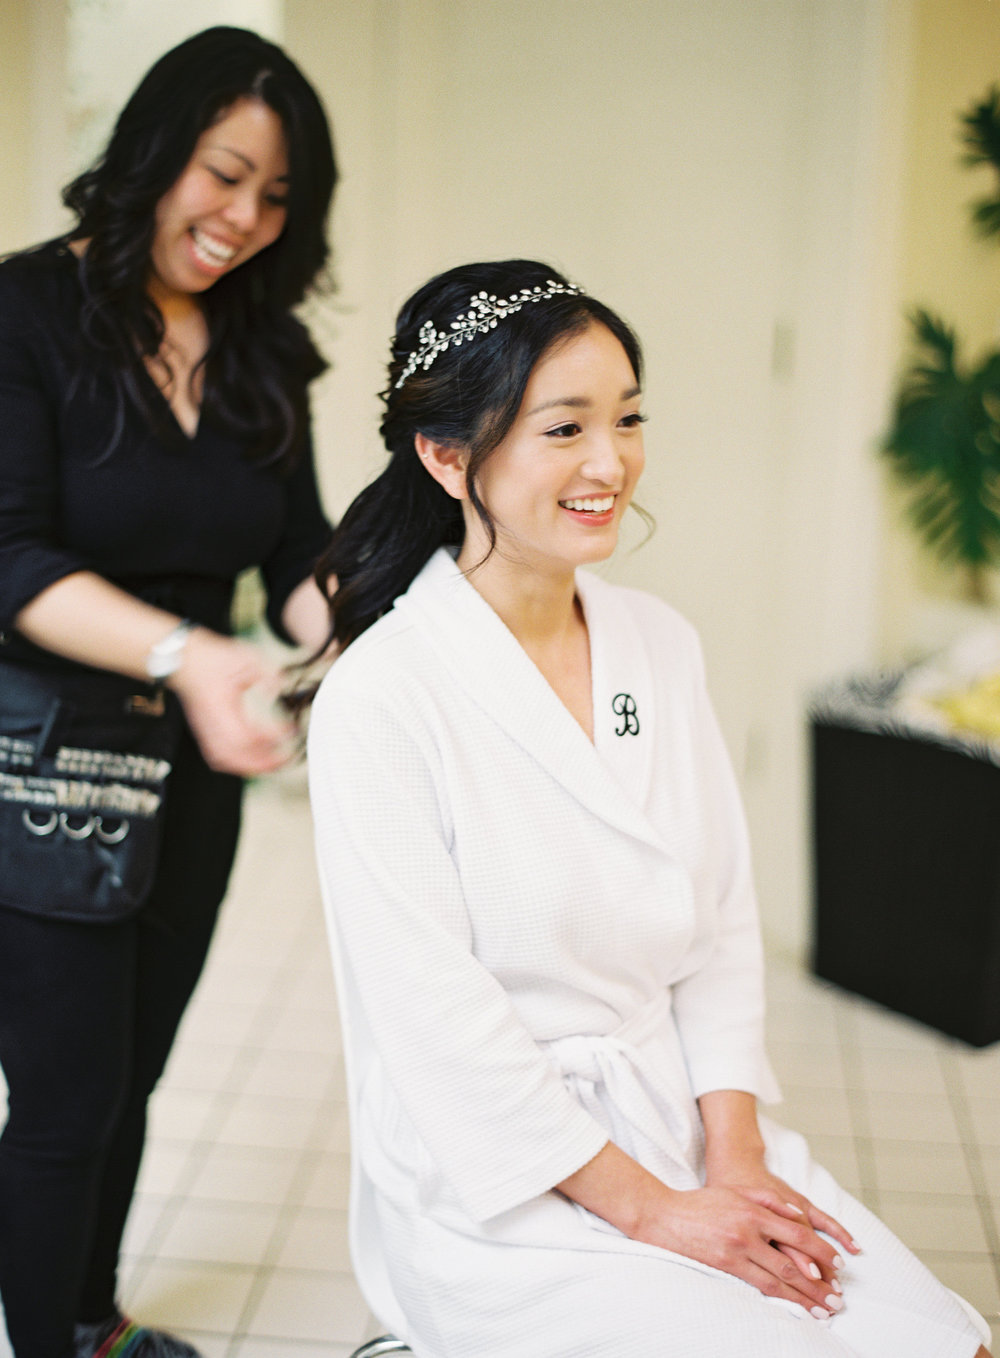 JA_Wedding_Getting_Ready_037.jpg